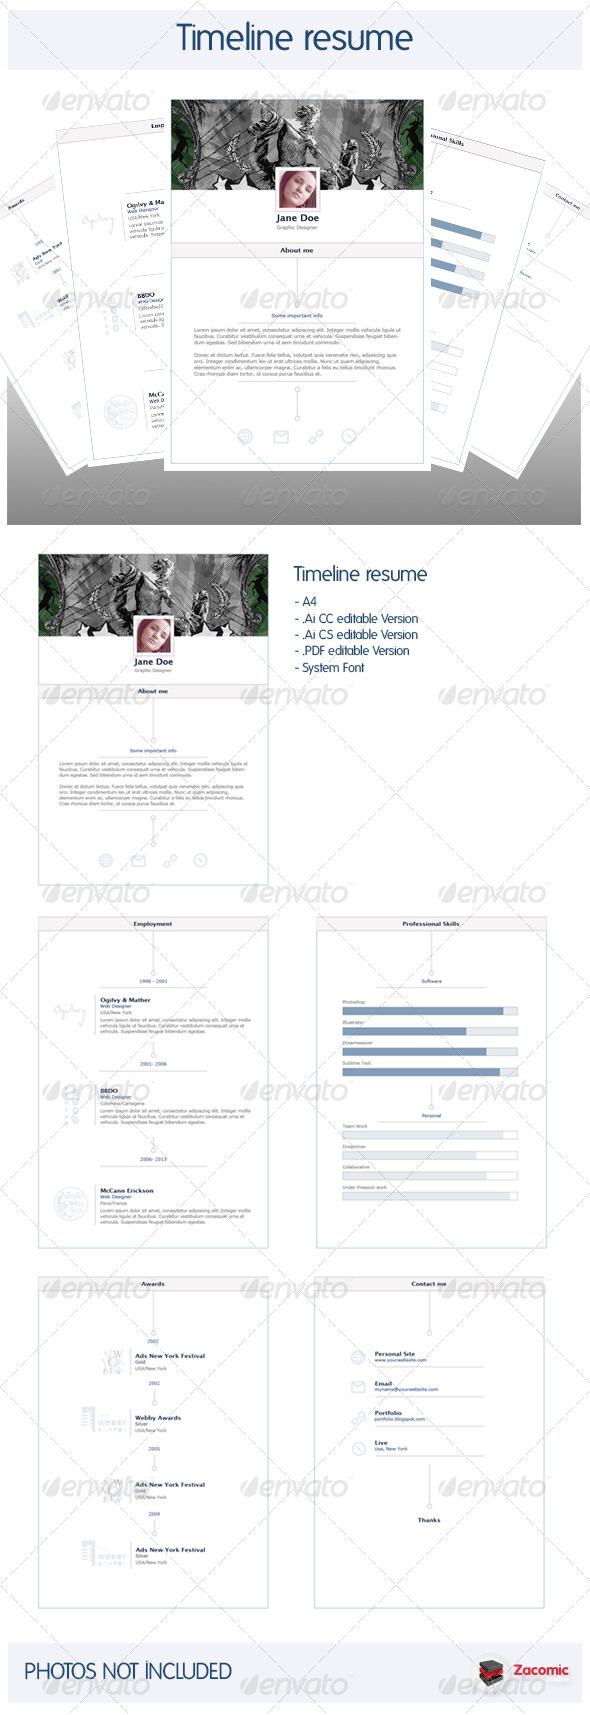 GraphicRiver Timeline Resume V.1.0 6097104